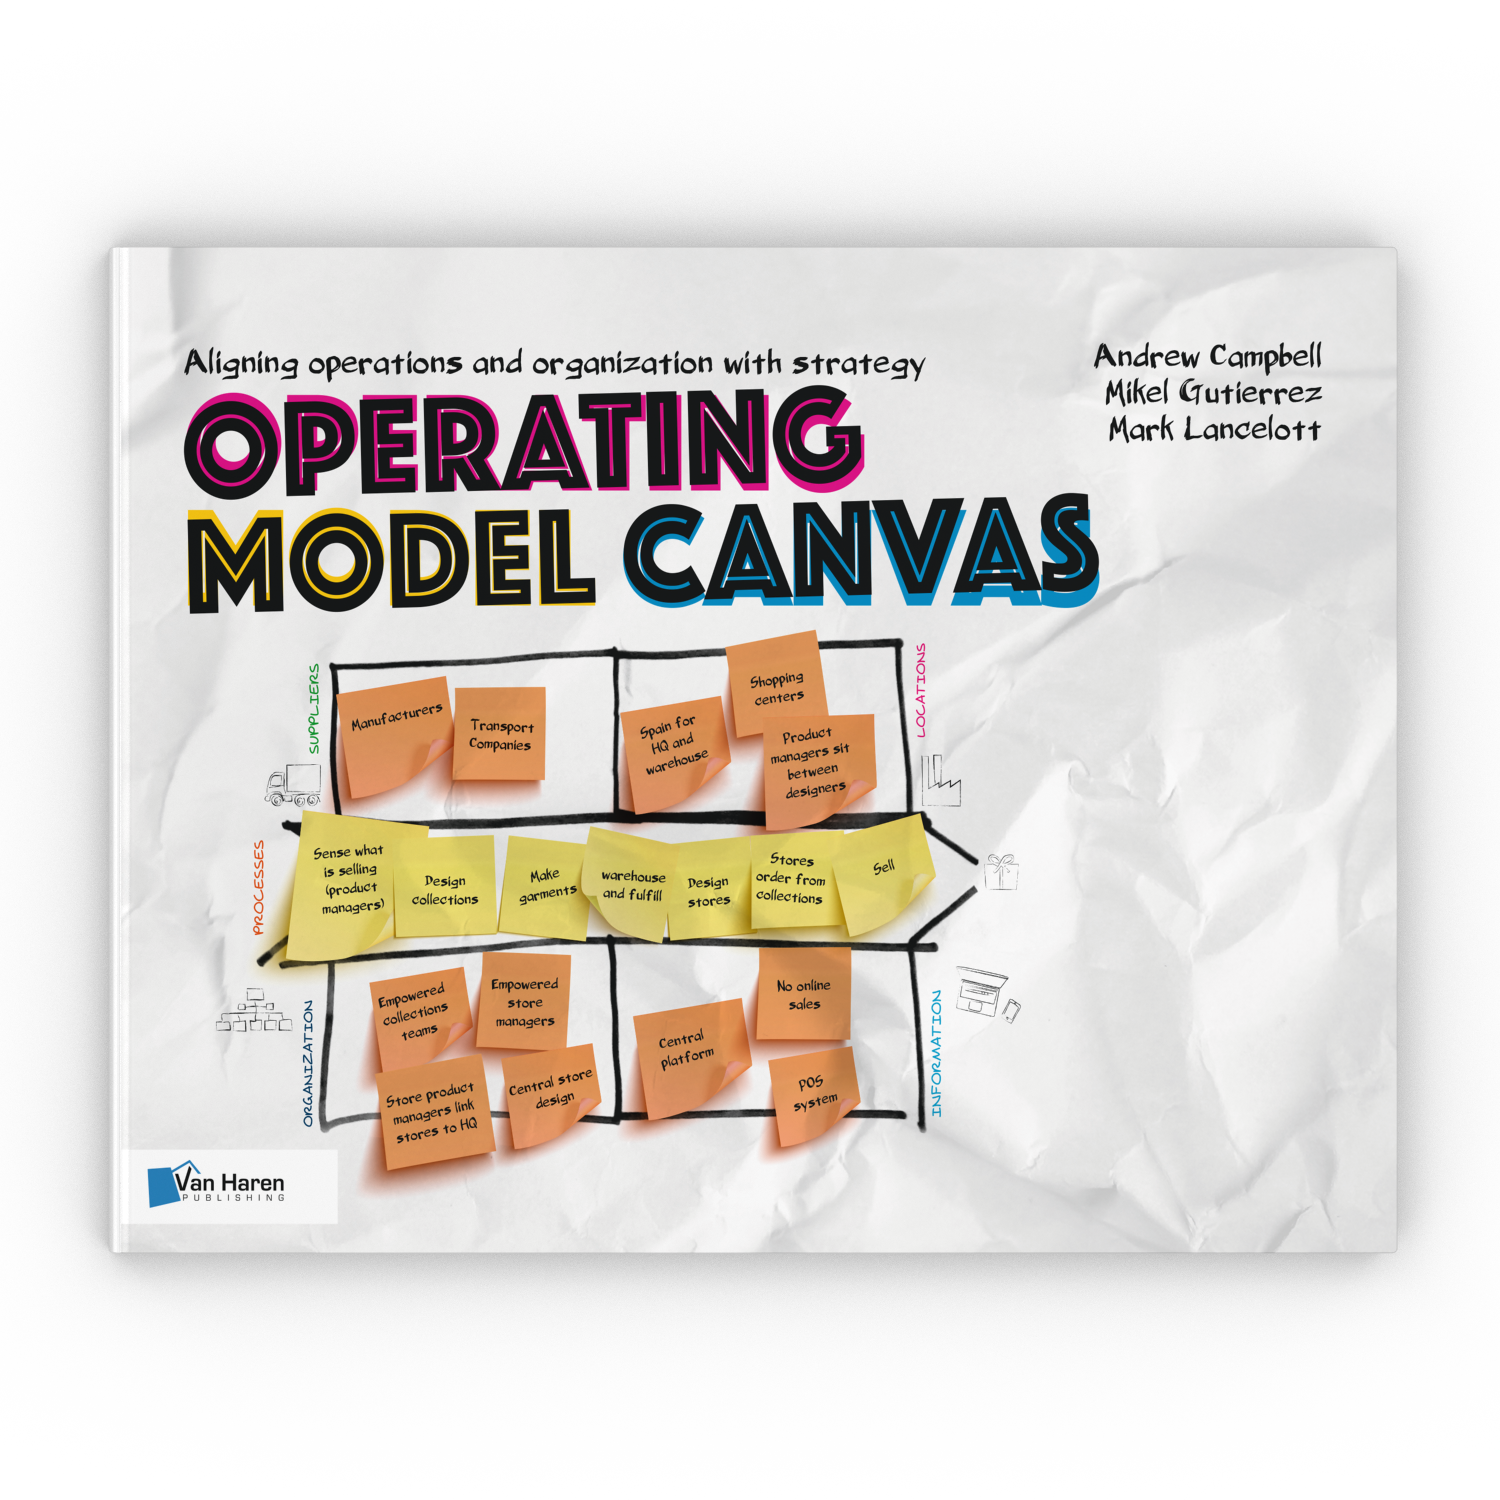 Operational Model Canvas